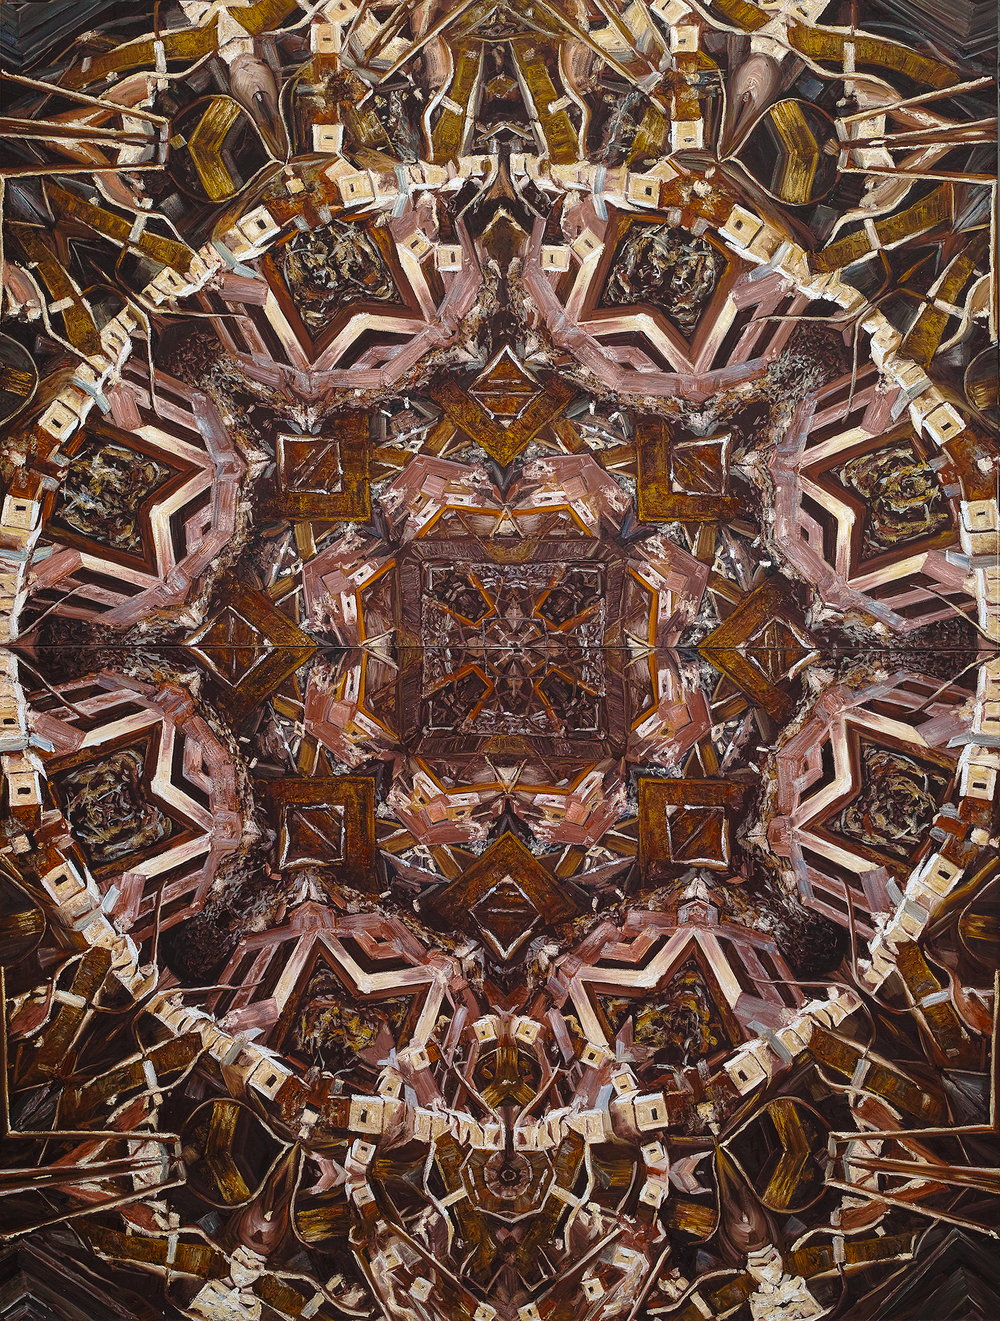 Caomin Xie, Mandala # 12, 2010, oil on canvas, 144 by 109 inches